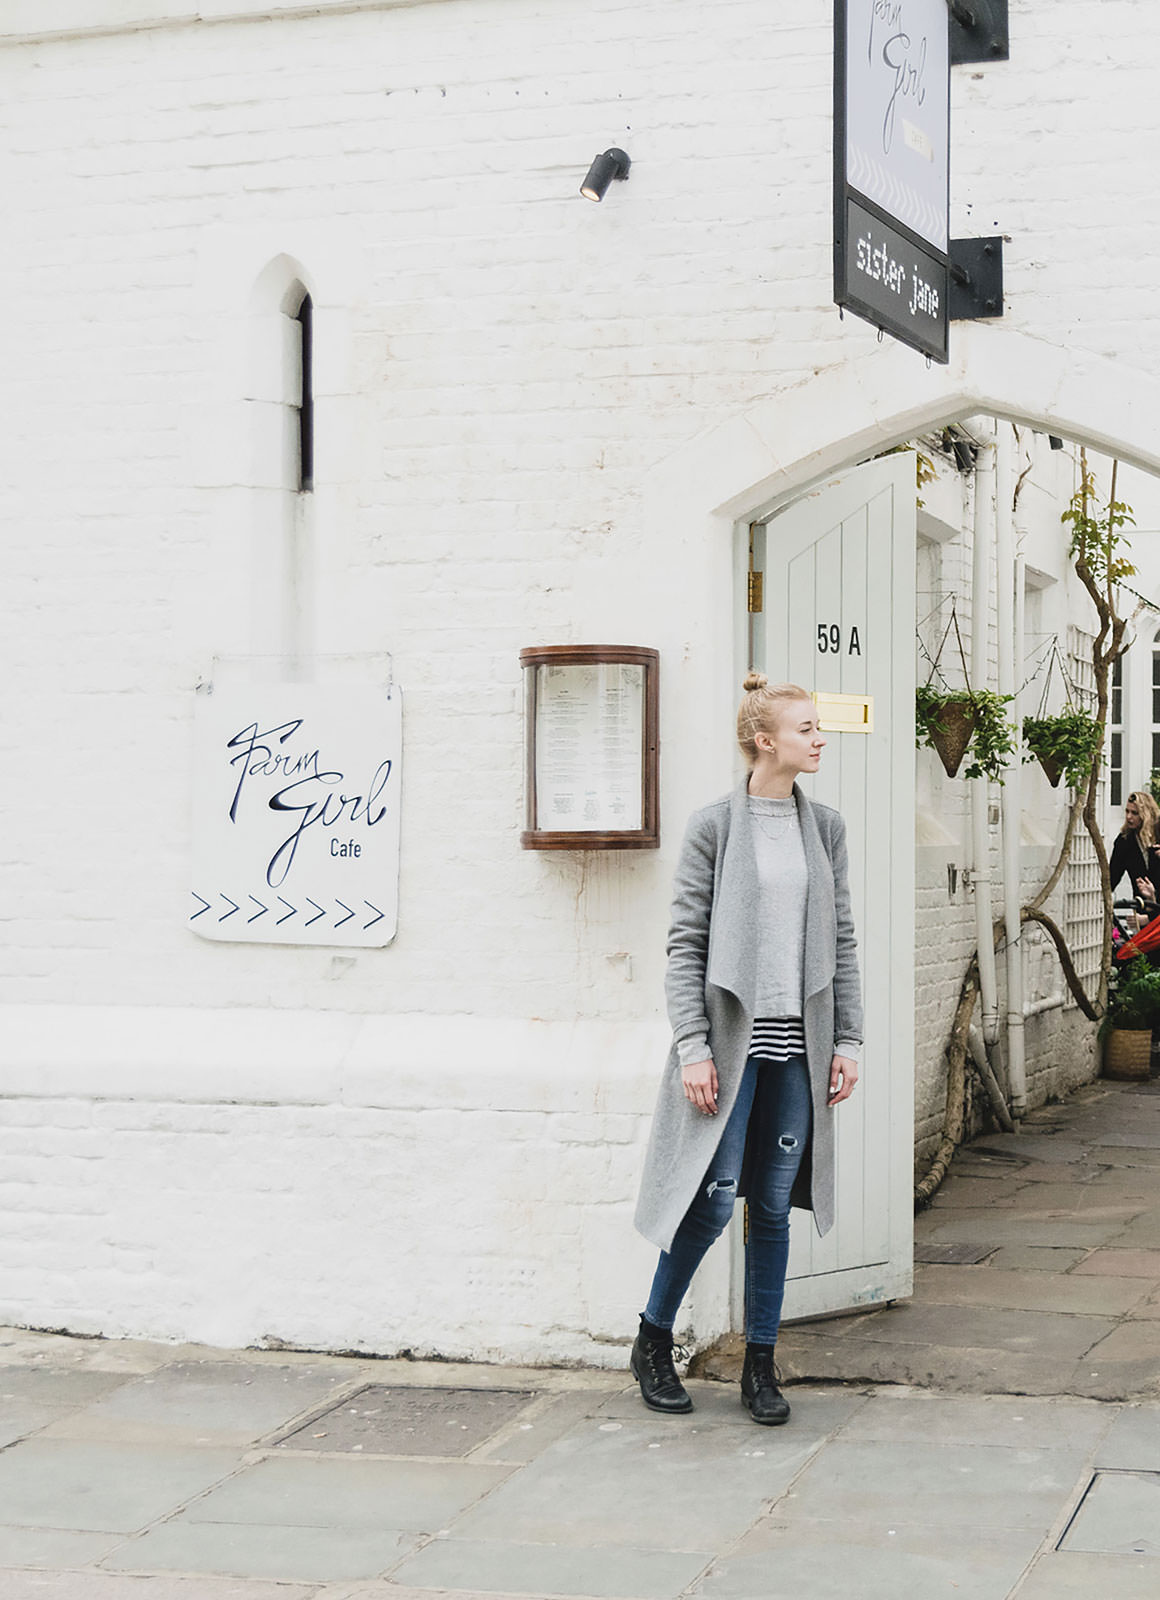 Prettiest Places to visit in London - Farm Girl Cafe